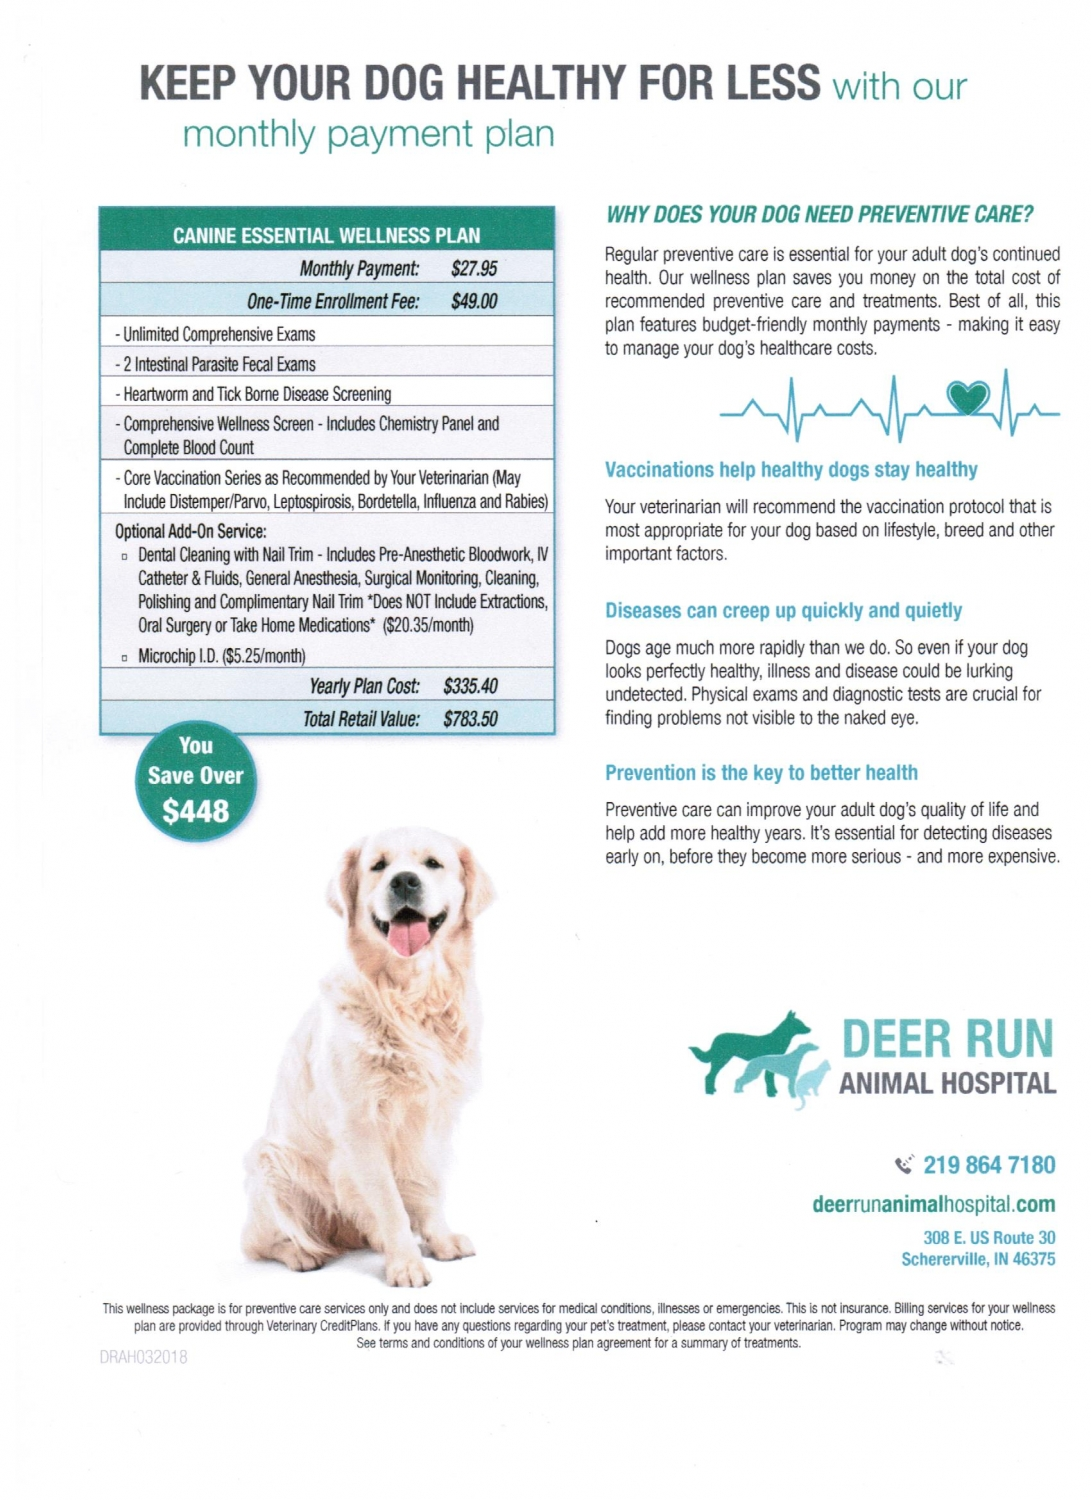 Monthly payment plan for healthy dogs